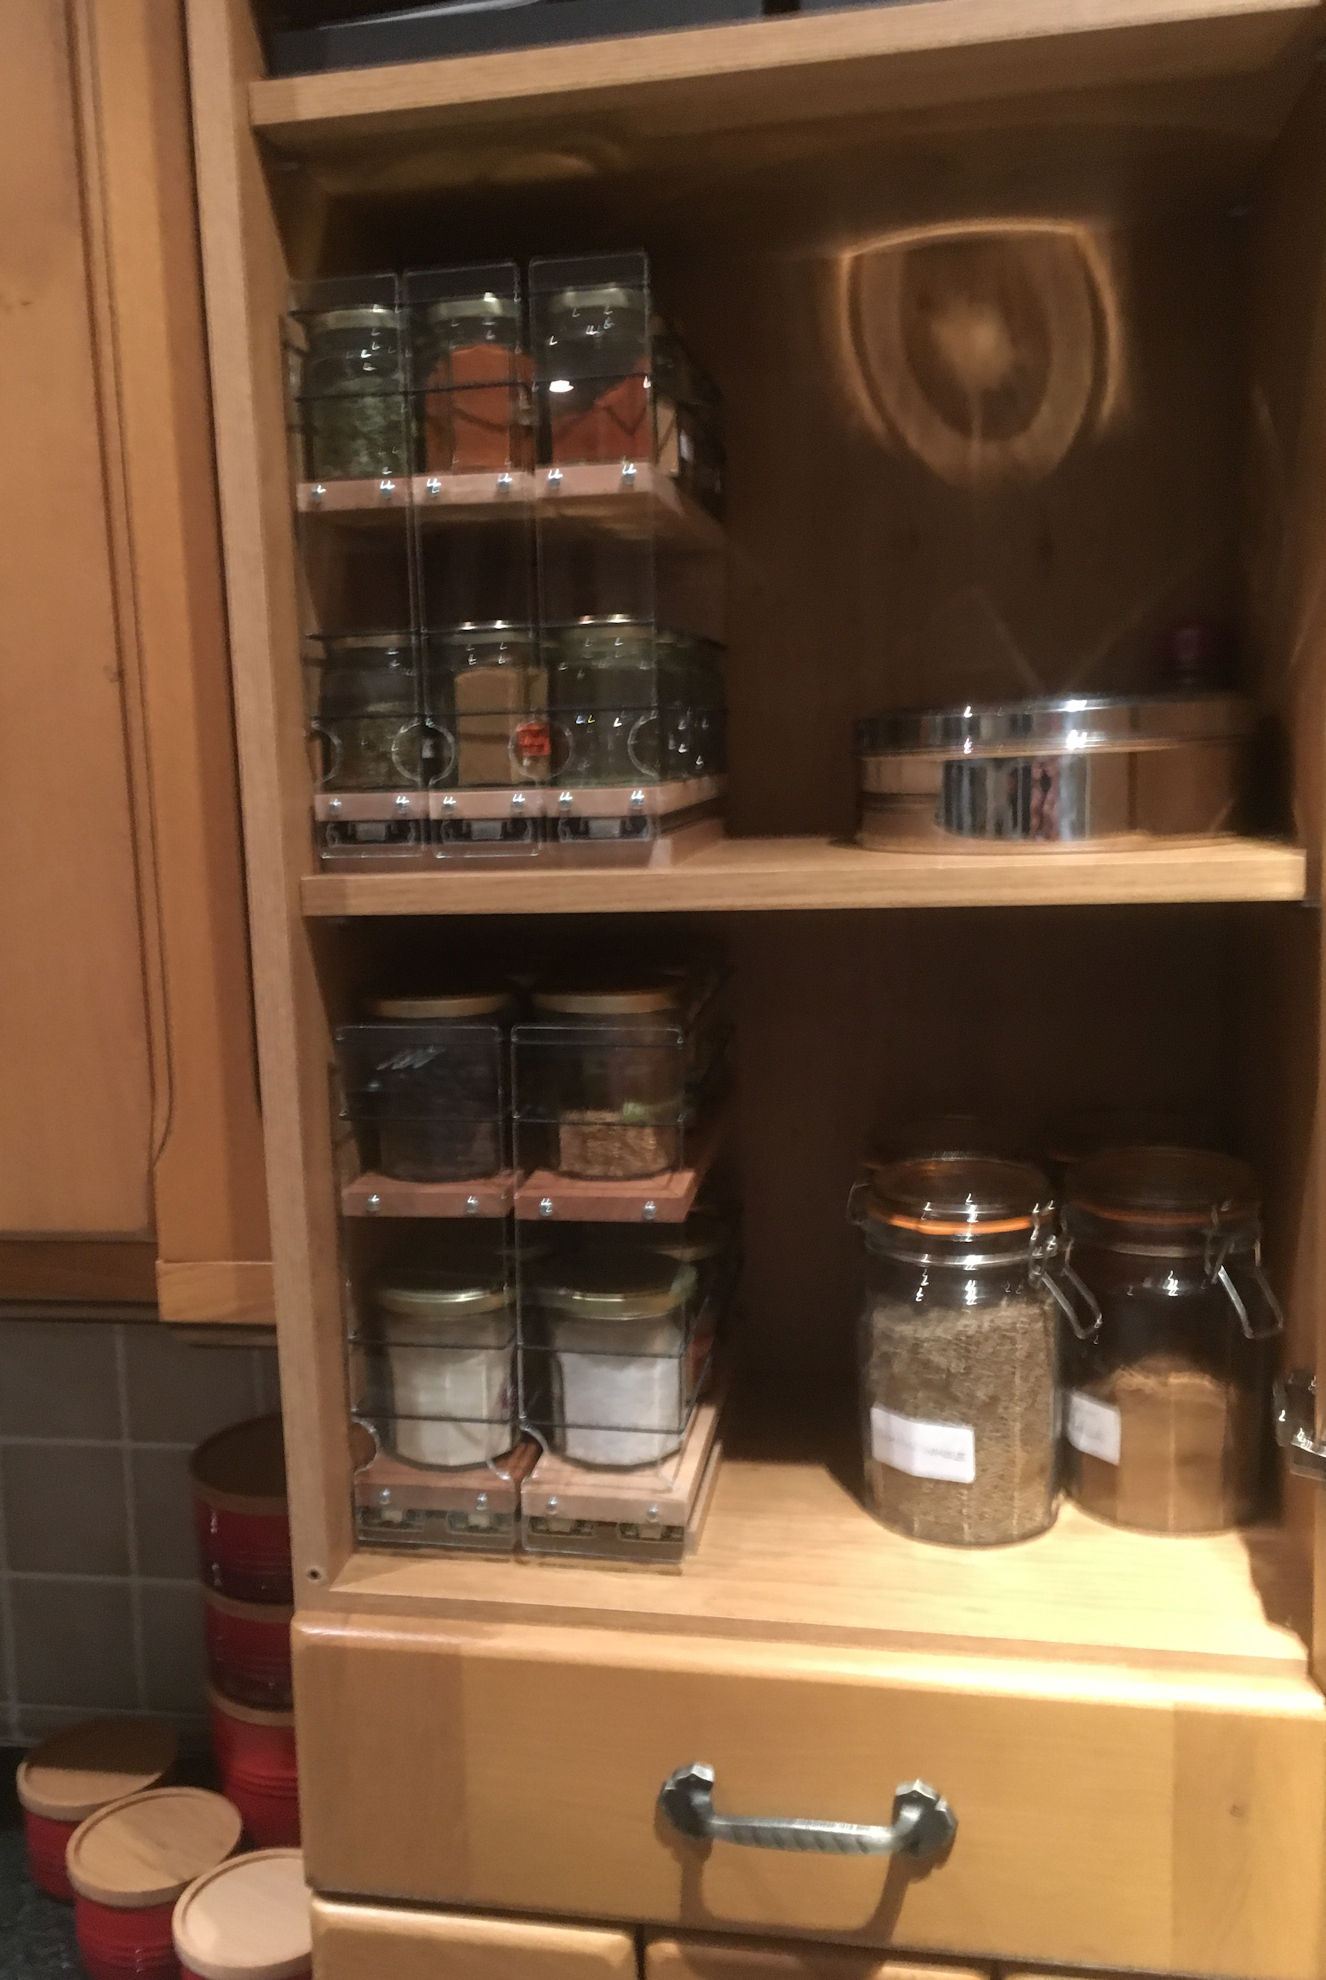 222x2x11 and 33x2x11 Spice Rack